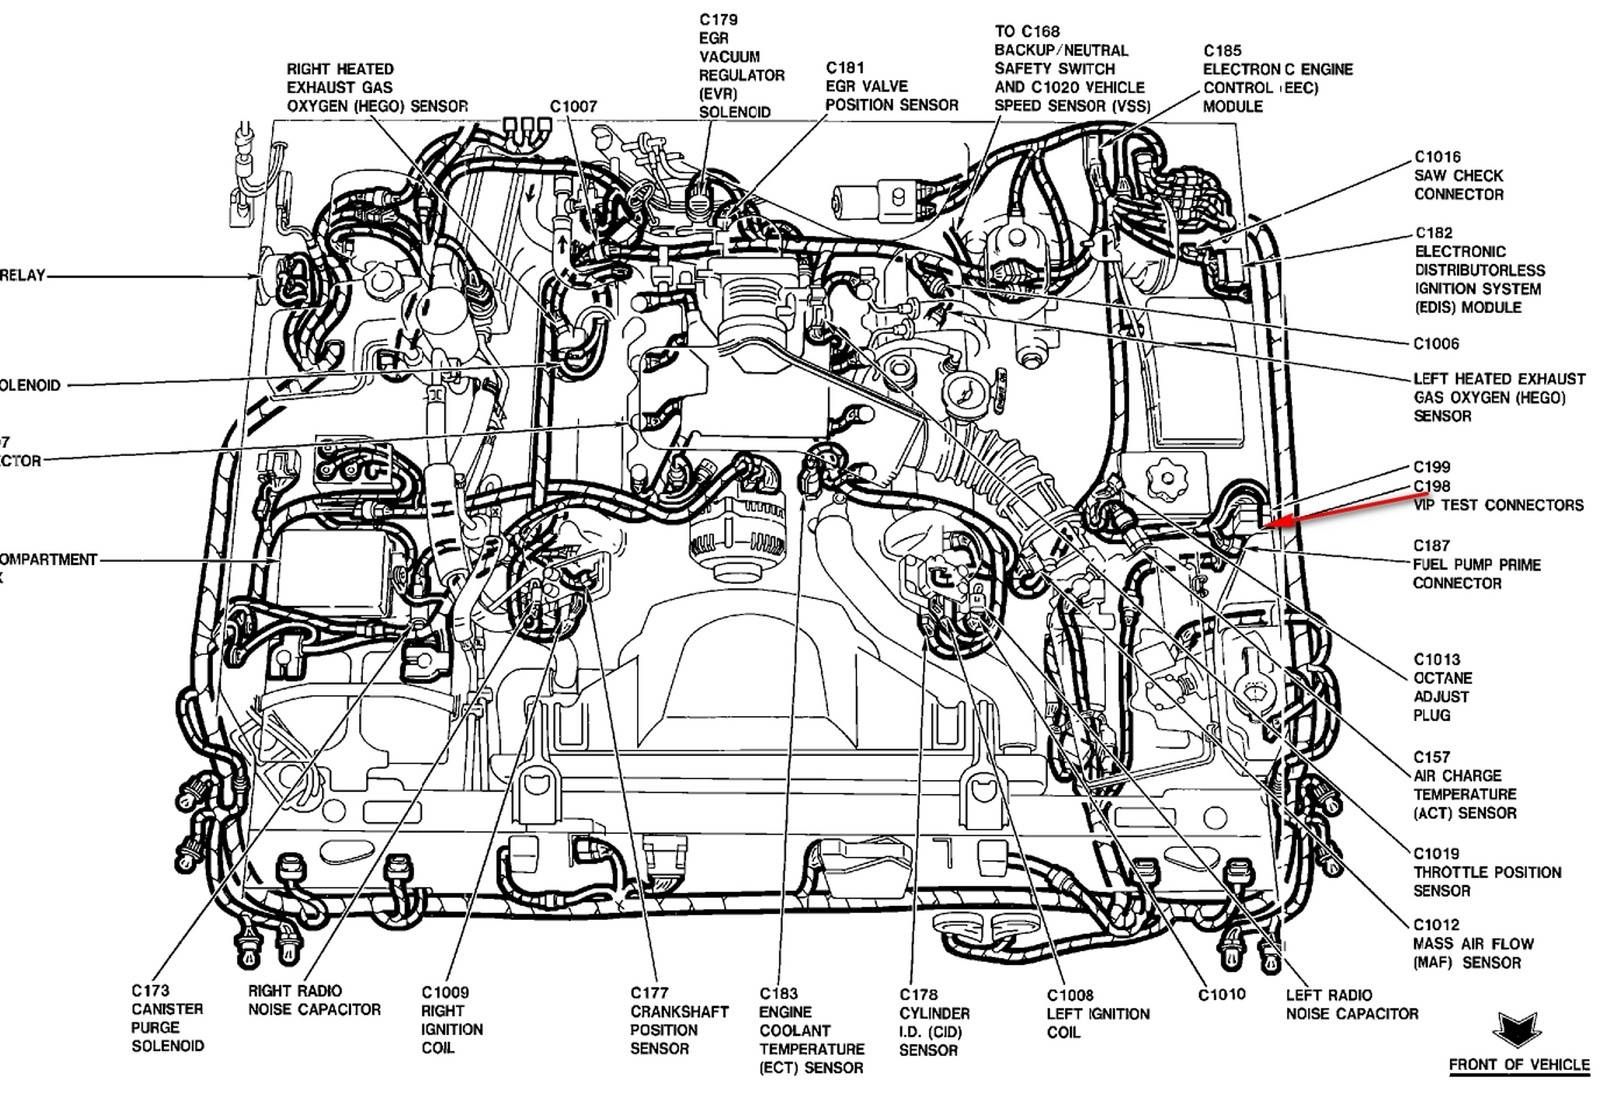 2001 Ford 4 6l Engine Diagram | Wiring Diagram  Ford F L Engine Diagrams on ford f-150 2004 5.4 vacuum diagram, lincoln 4.6 engine diagram, ford 2.3 liter timing marks, f150 5.4 vacuum diagram, 93 f150 vacuum diagram, ford f-150 cooling system diagram, 2001 ford f-150 suspension diagram, 4.6 liter engine diagram, ford 5.4 cooling diagram, lincoln ls v8 engine diagram, ford f-150 transmission diagram, ford 4 cylinder performance, 1992 ford f-150 vacuum diagram, ford e 150 engine diagram, f150 engine diagram, 1997 f150 vacuum line diagram, ford motor parts diagram, ford body parts diagram, ford f-150 parts diagram, diesel truck engine diagram,